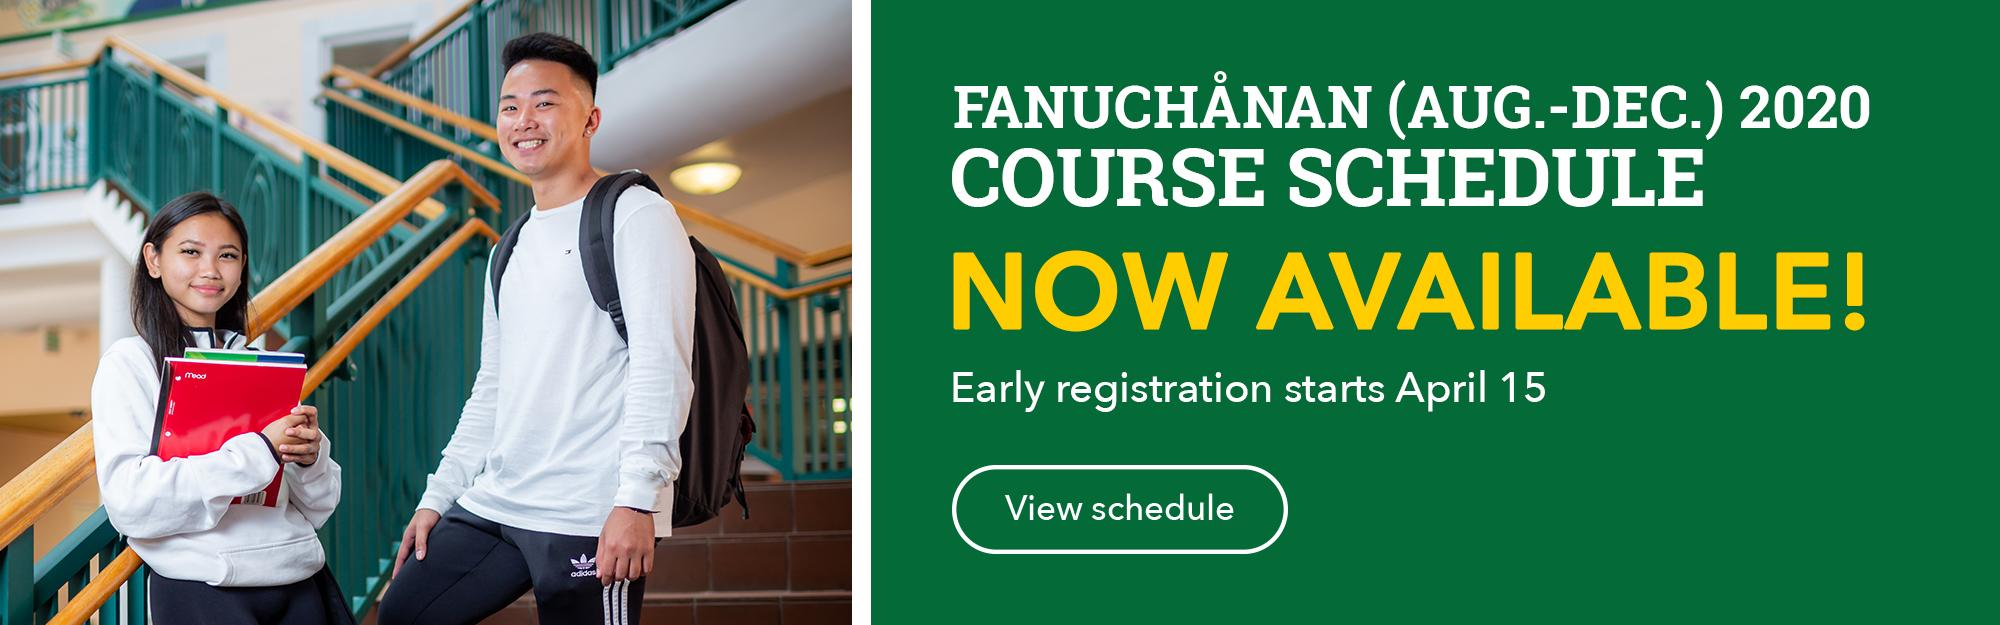 Click to view the Course Schedule